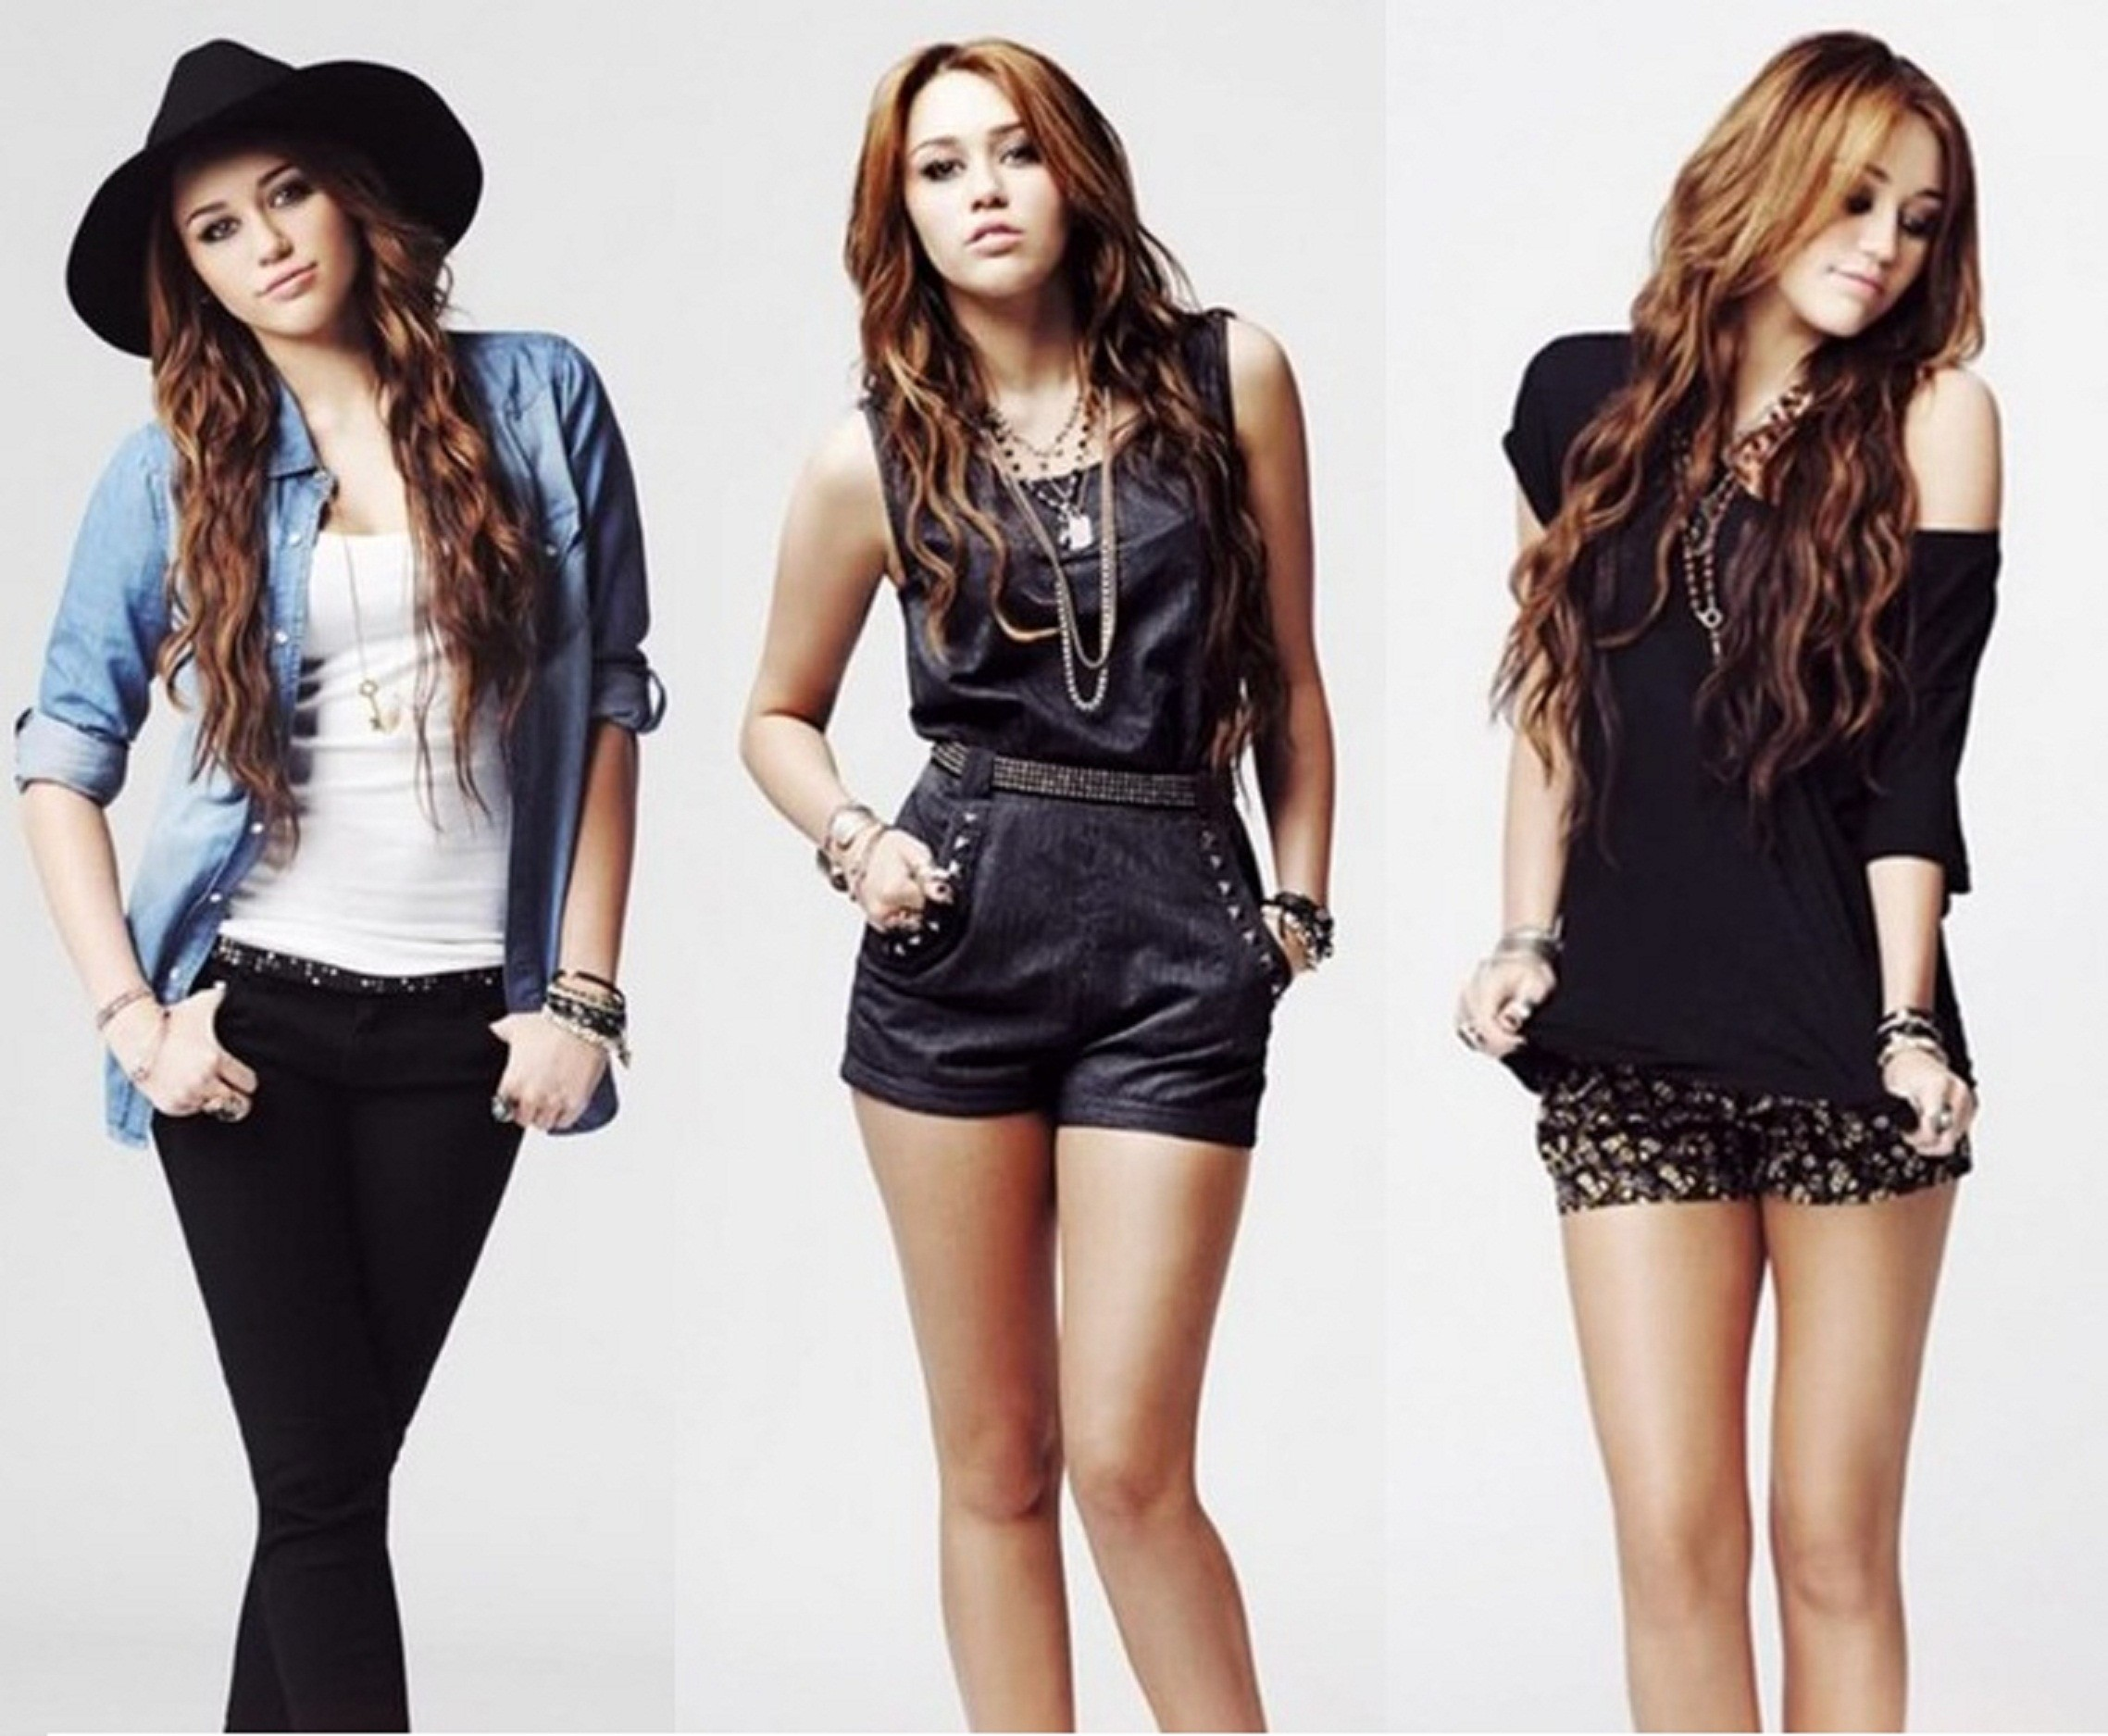 Fashion Clothes For Girls · Clothing Styles For Teenage Girls 2013 Wallpaper